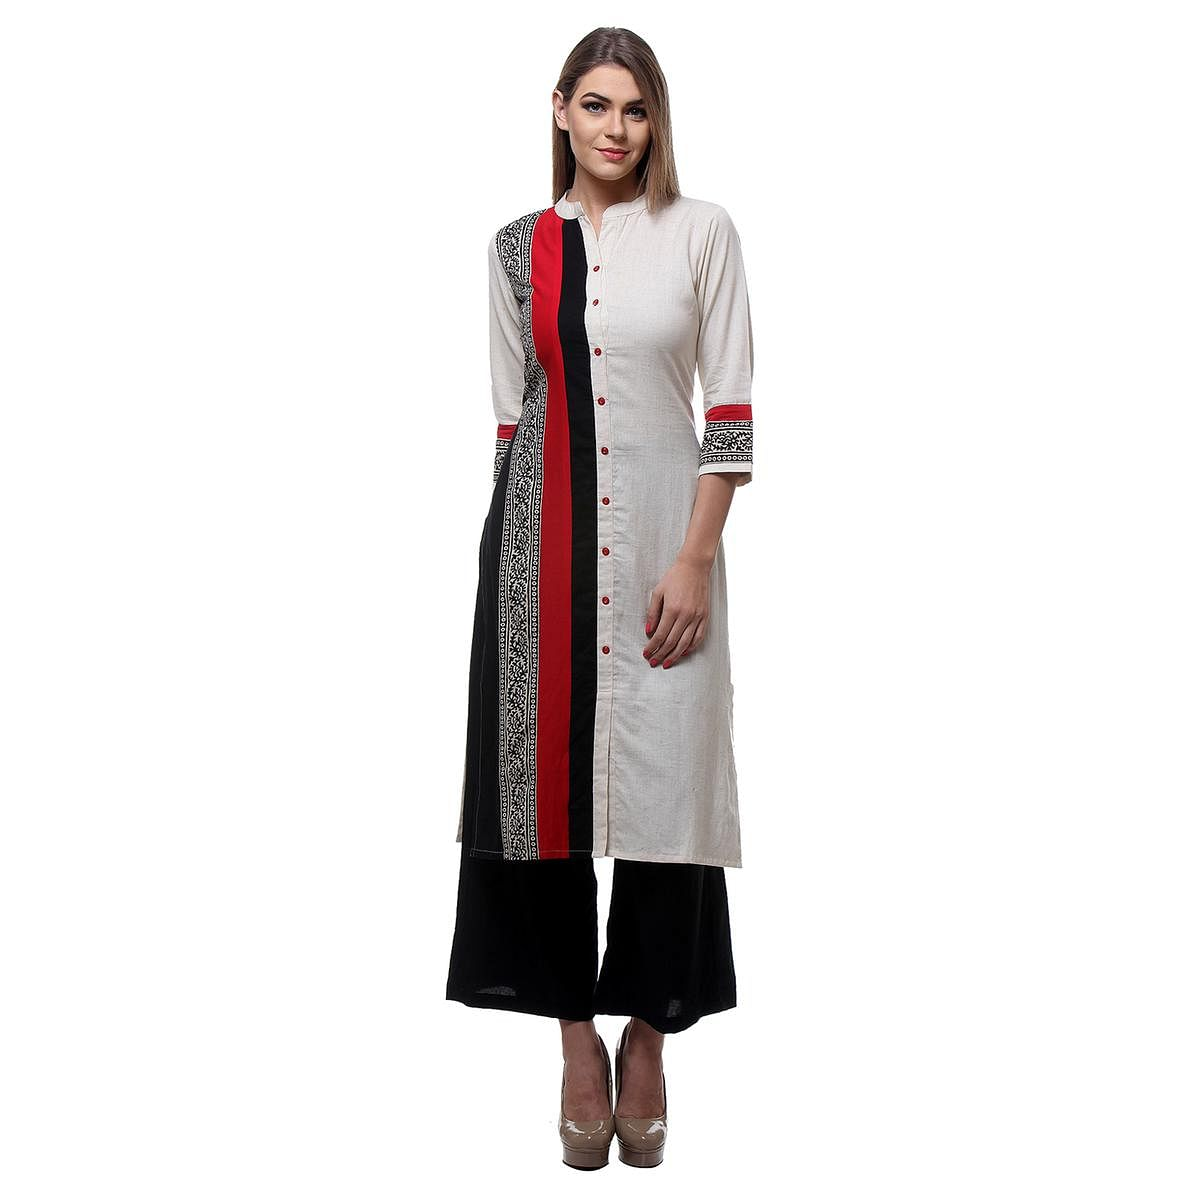 Off White - Black Printed Stitched Kurti